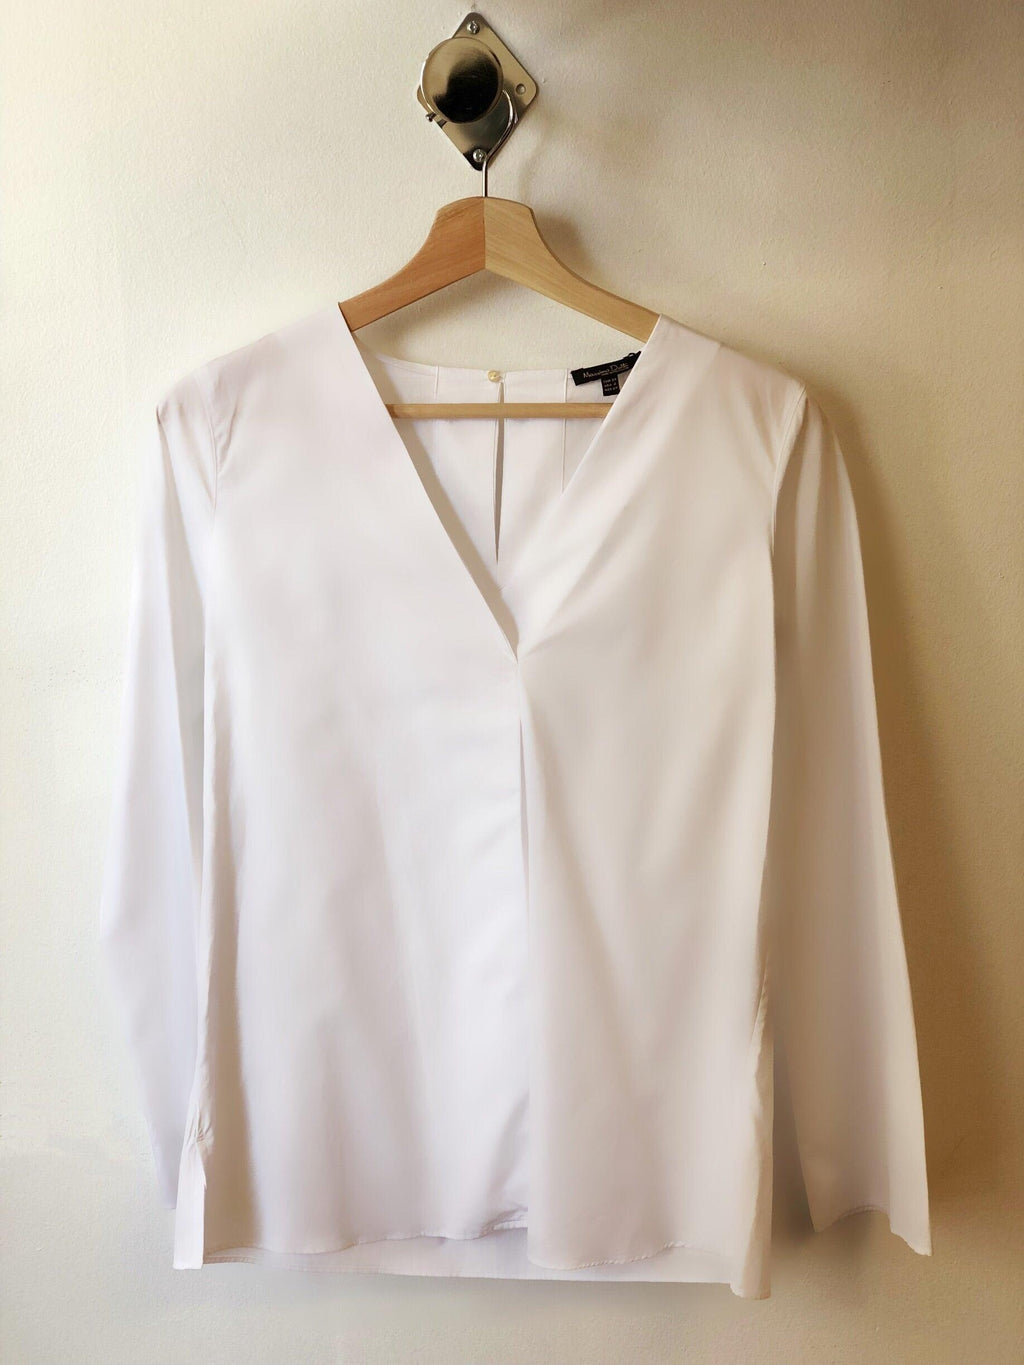 Massimo Dutti White Blouse 5117/155 - My Royal Closet